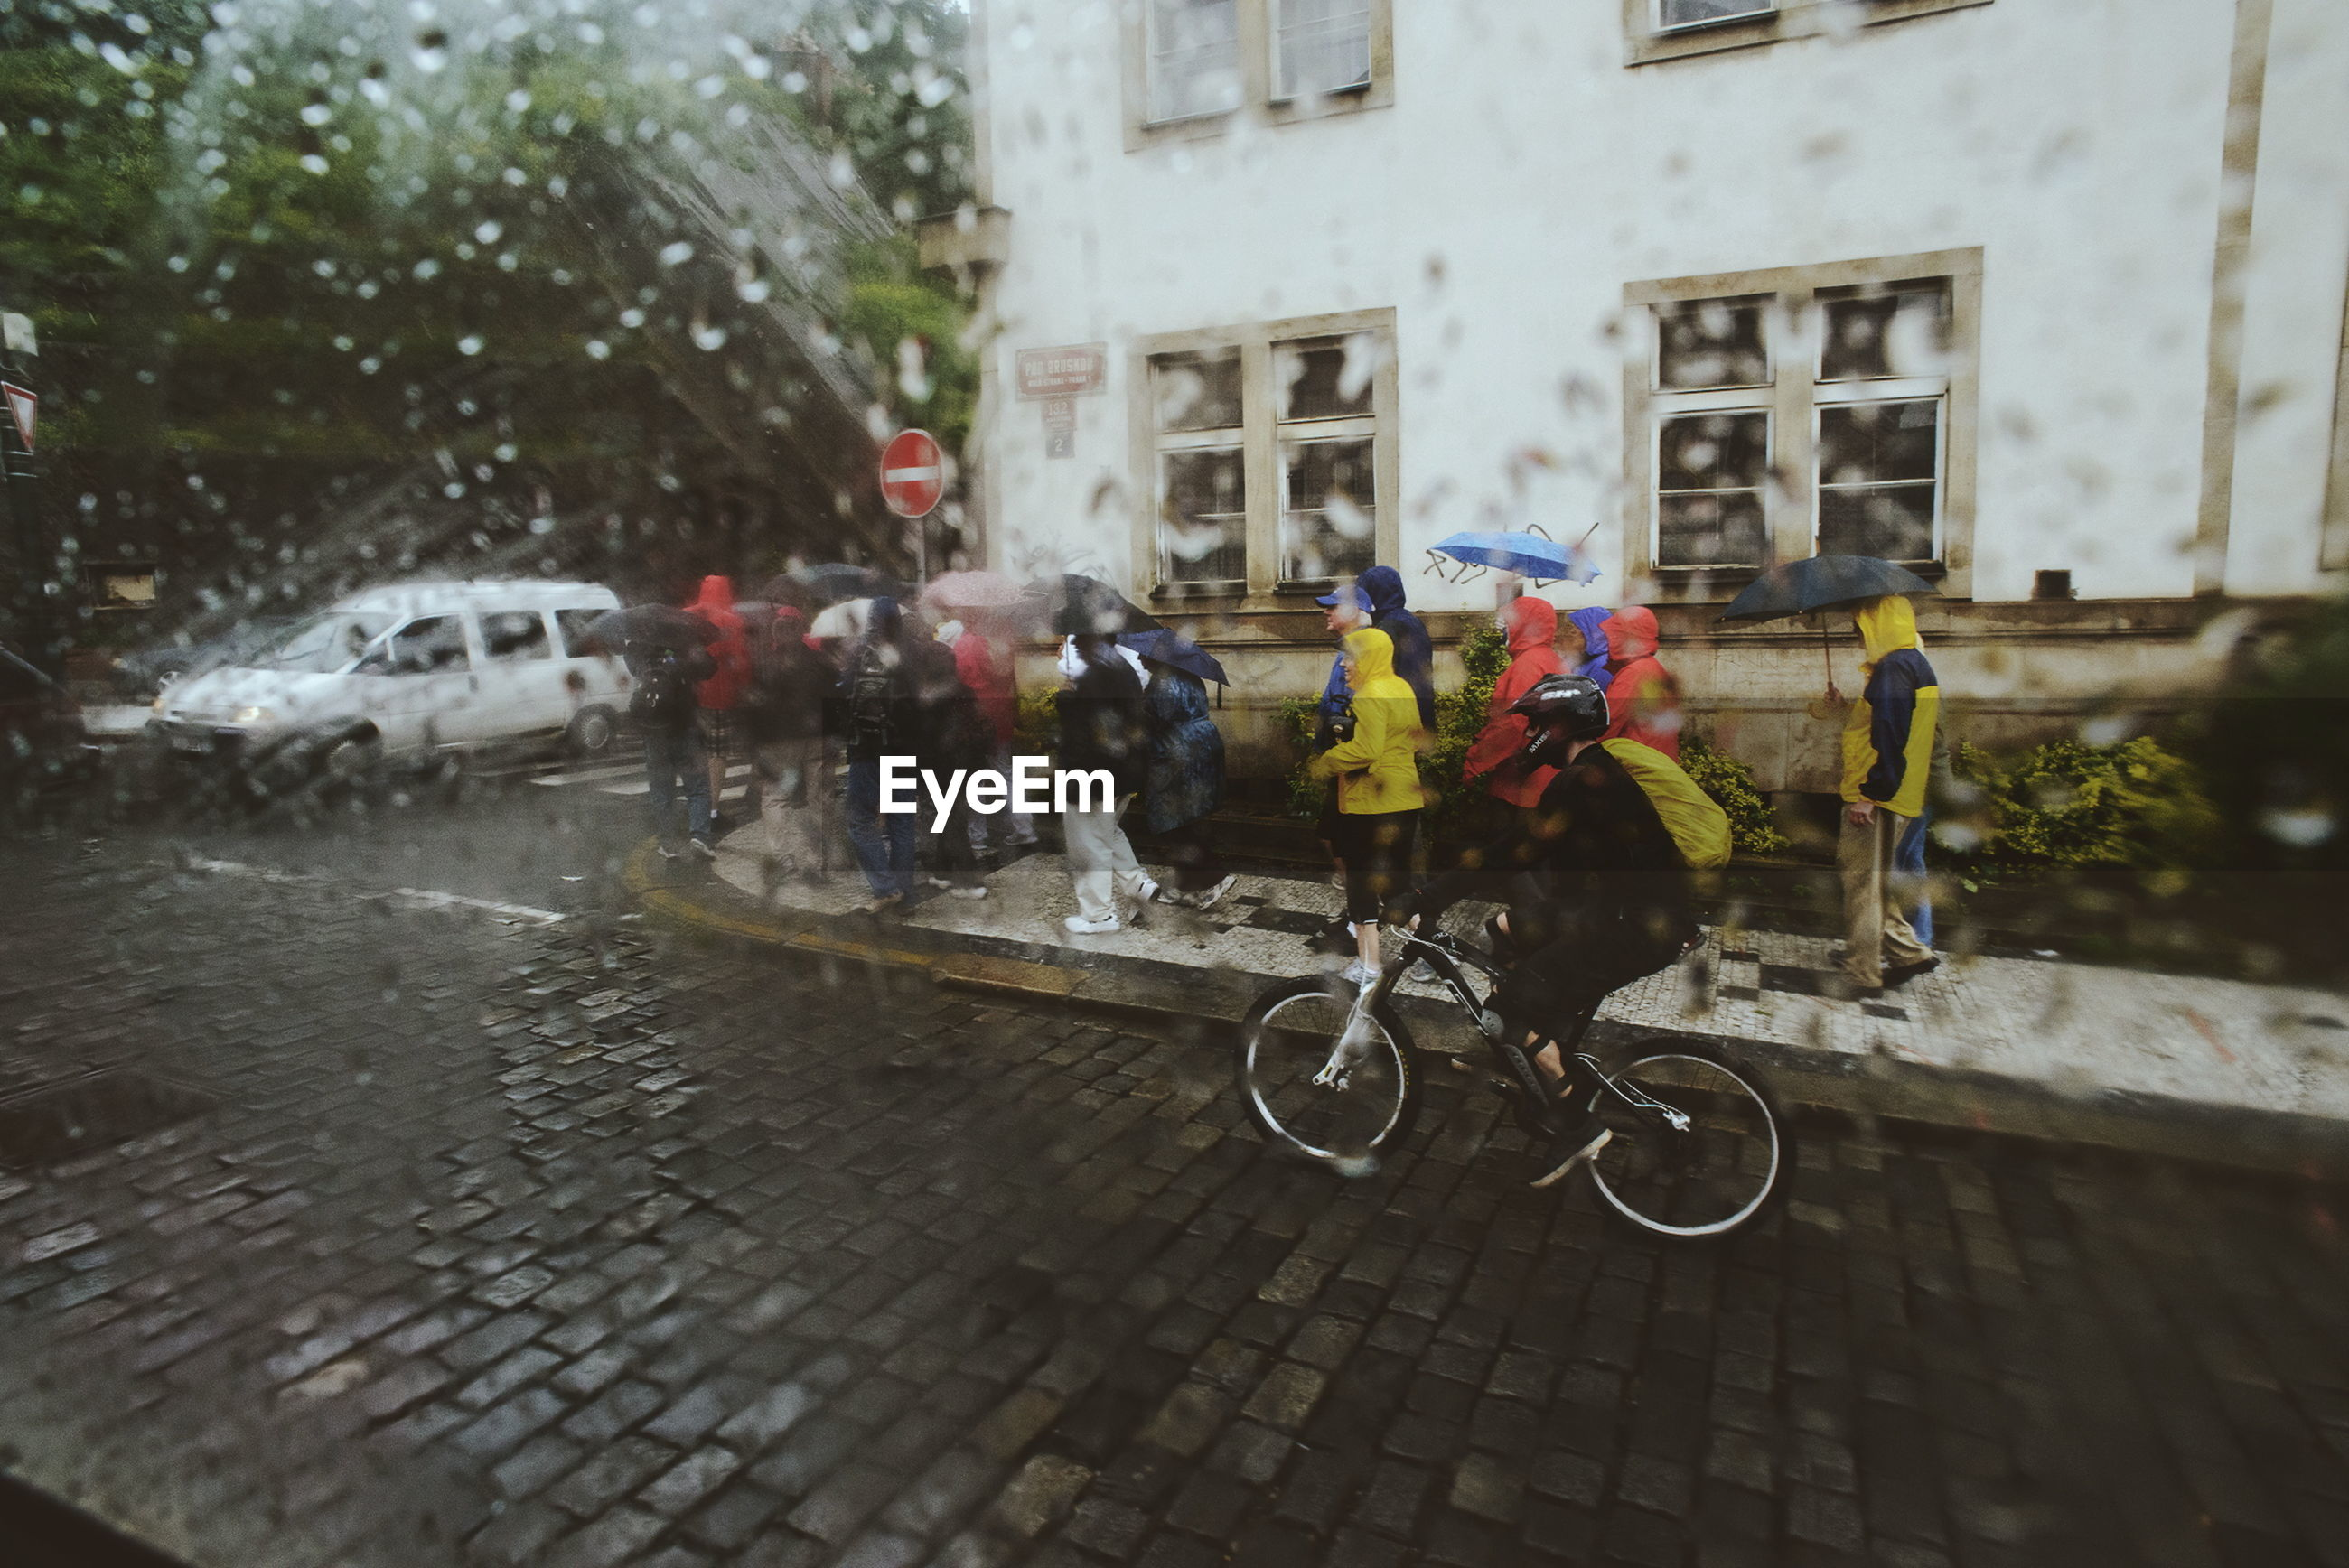 BICYCLE ON WET STREET IN CITY